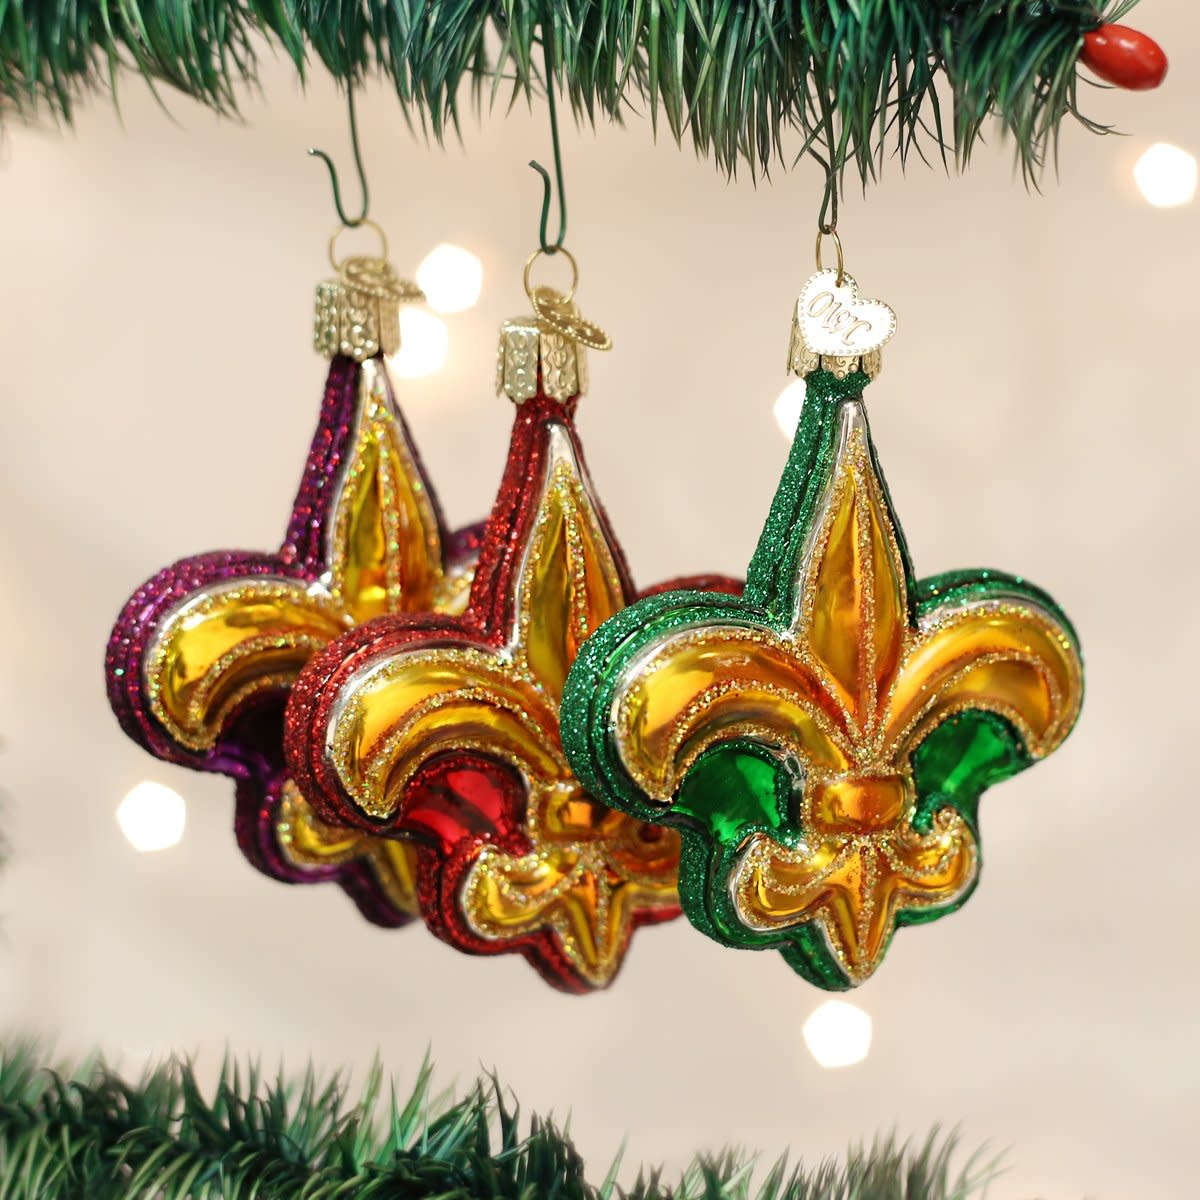 Old World Christmas OWC Fleur-De-Lis Ornament